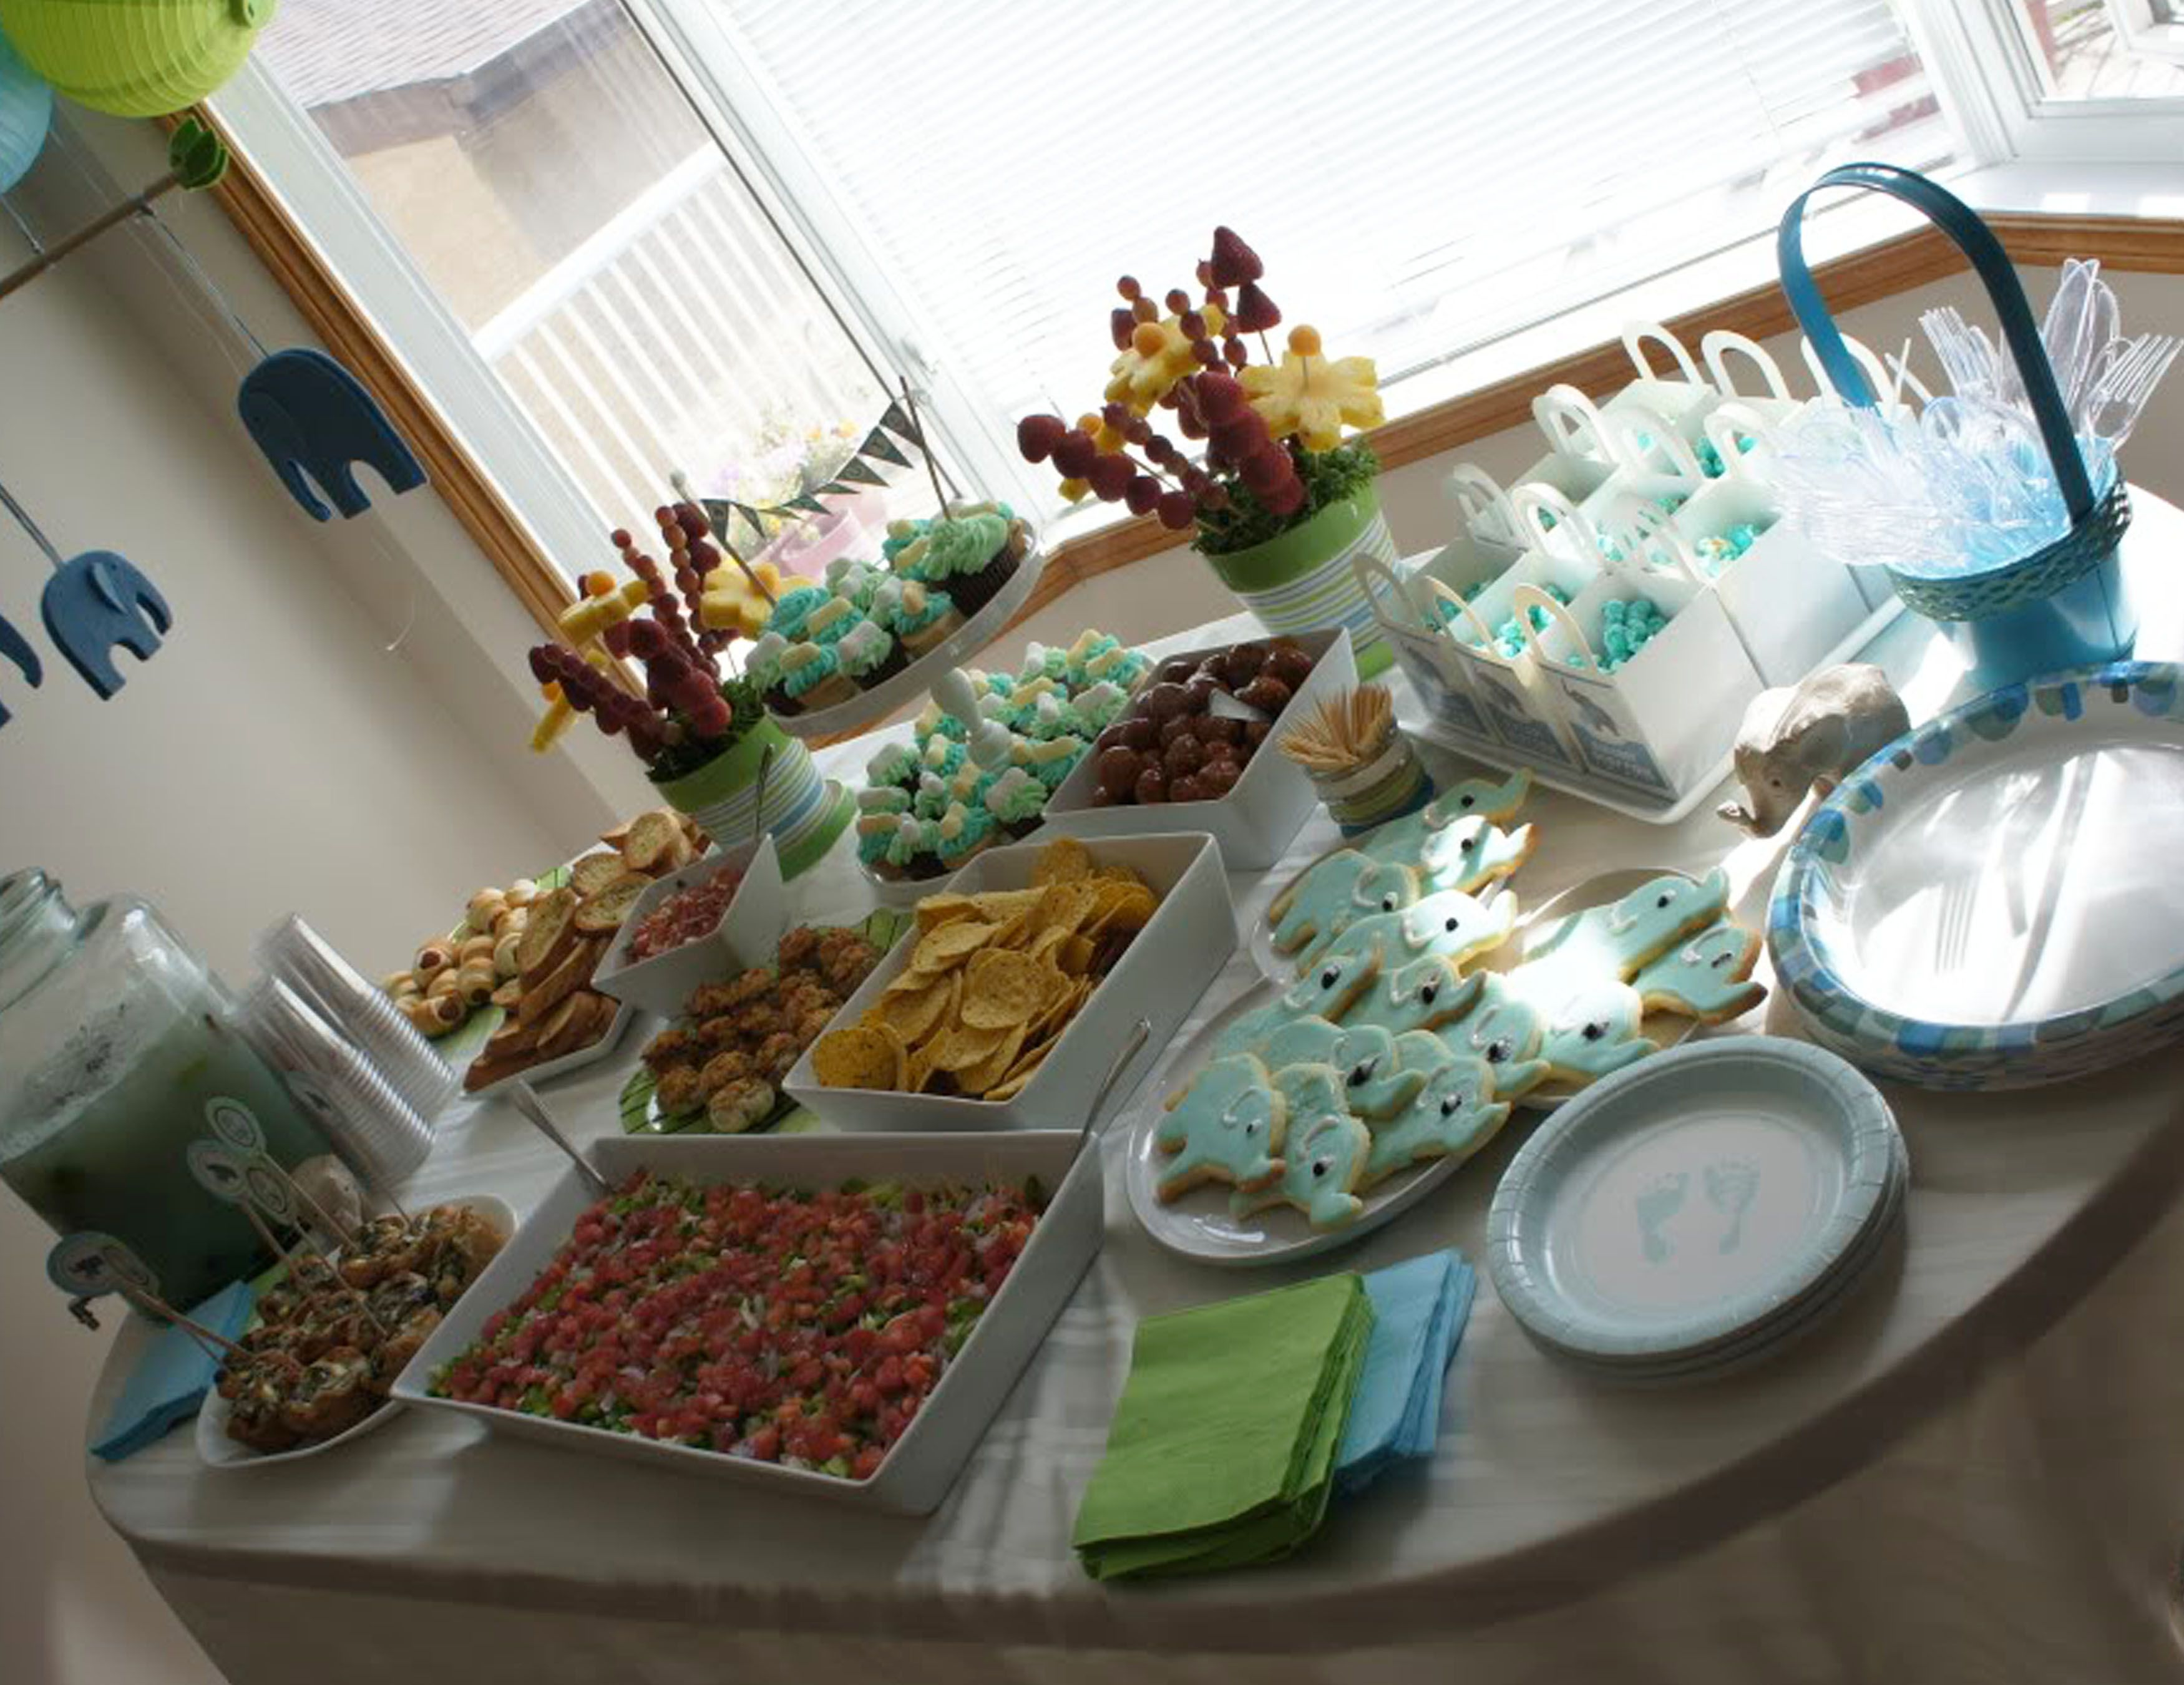 Chic Baby Shower Party Baby Baby Hippo Baby Shower Me Finger Food Baby Shower Foods Ideas Finger Foods Baby Hippo Baby Shower Me Finger Food Baby Shower Foods Ideas Fingerfoods Baby Shower Brunch Fing